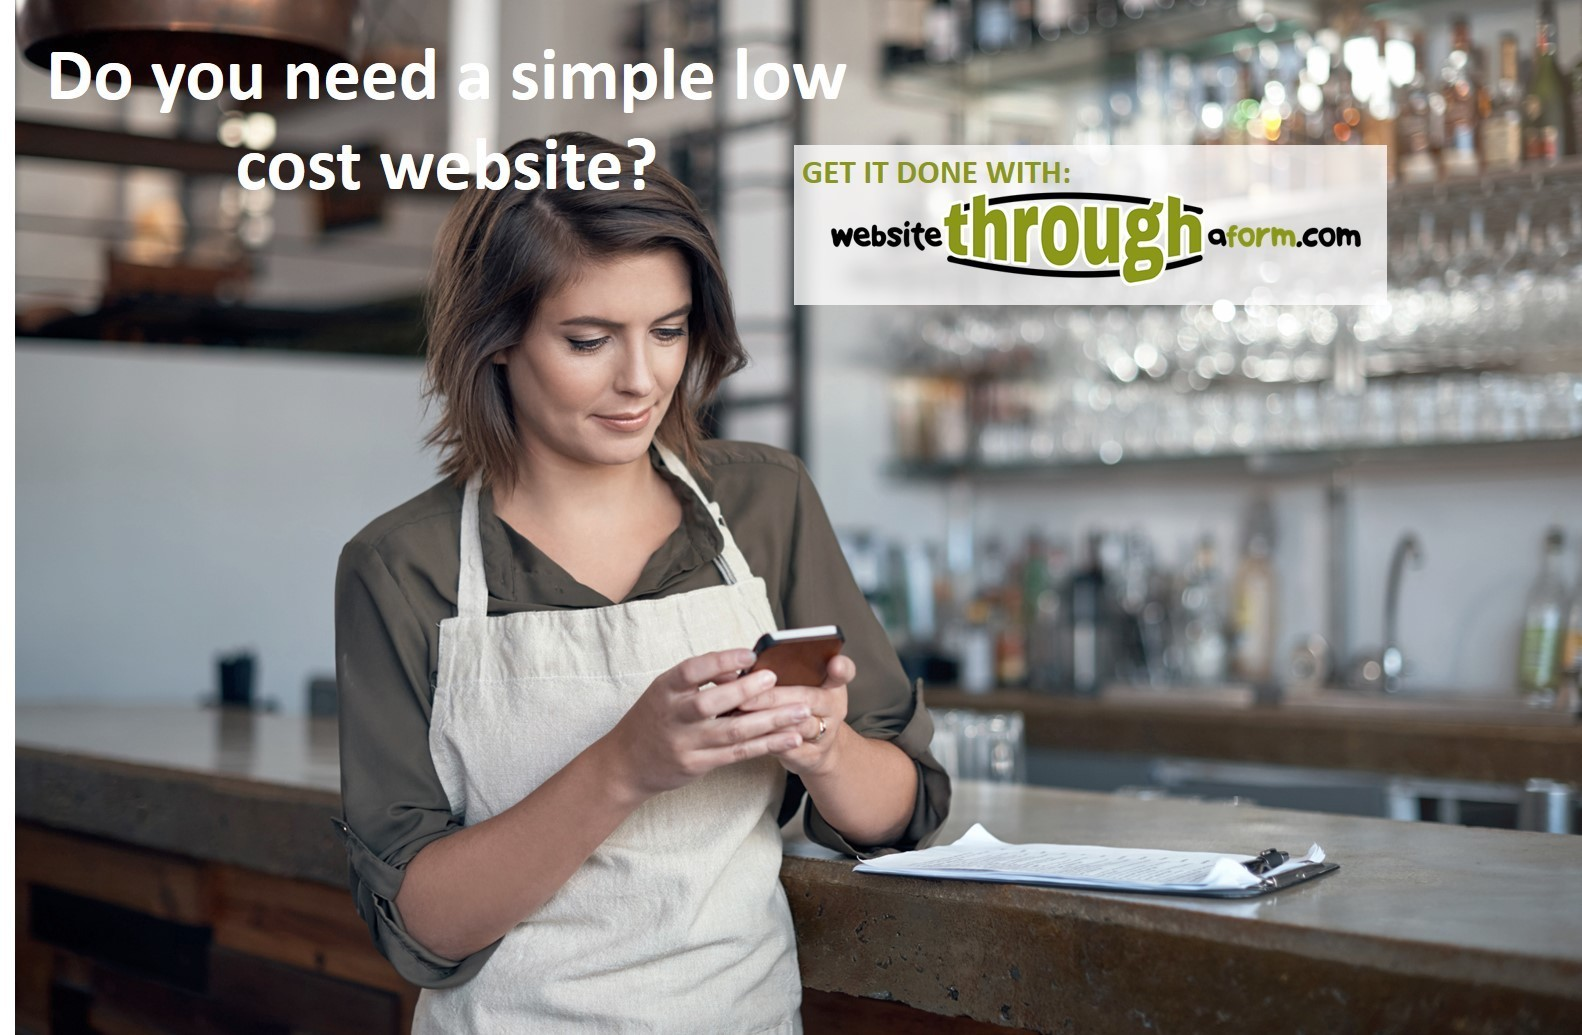 Do You Need A Simple Low Cost Website